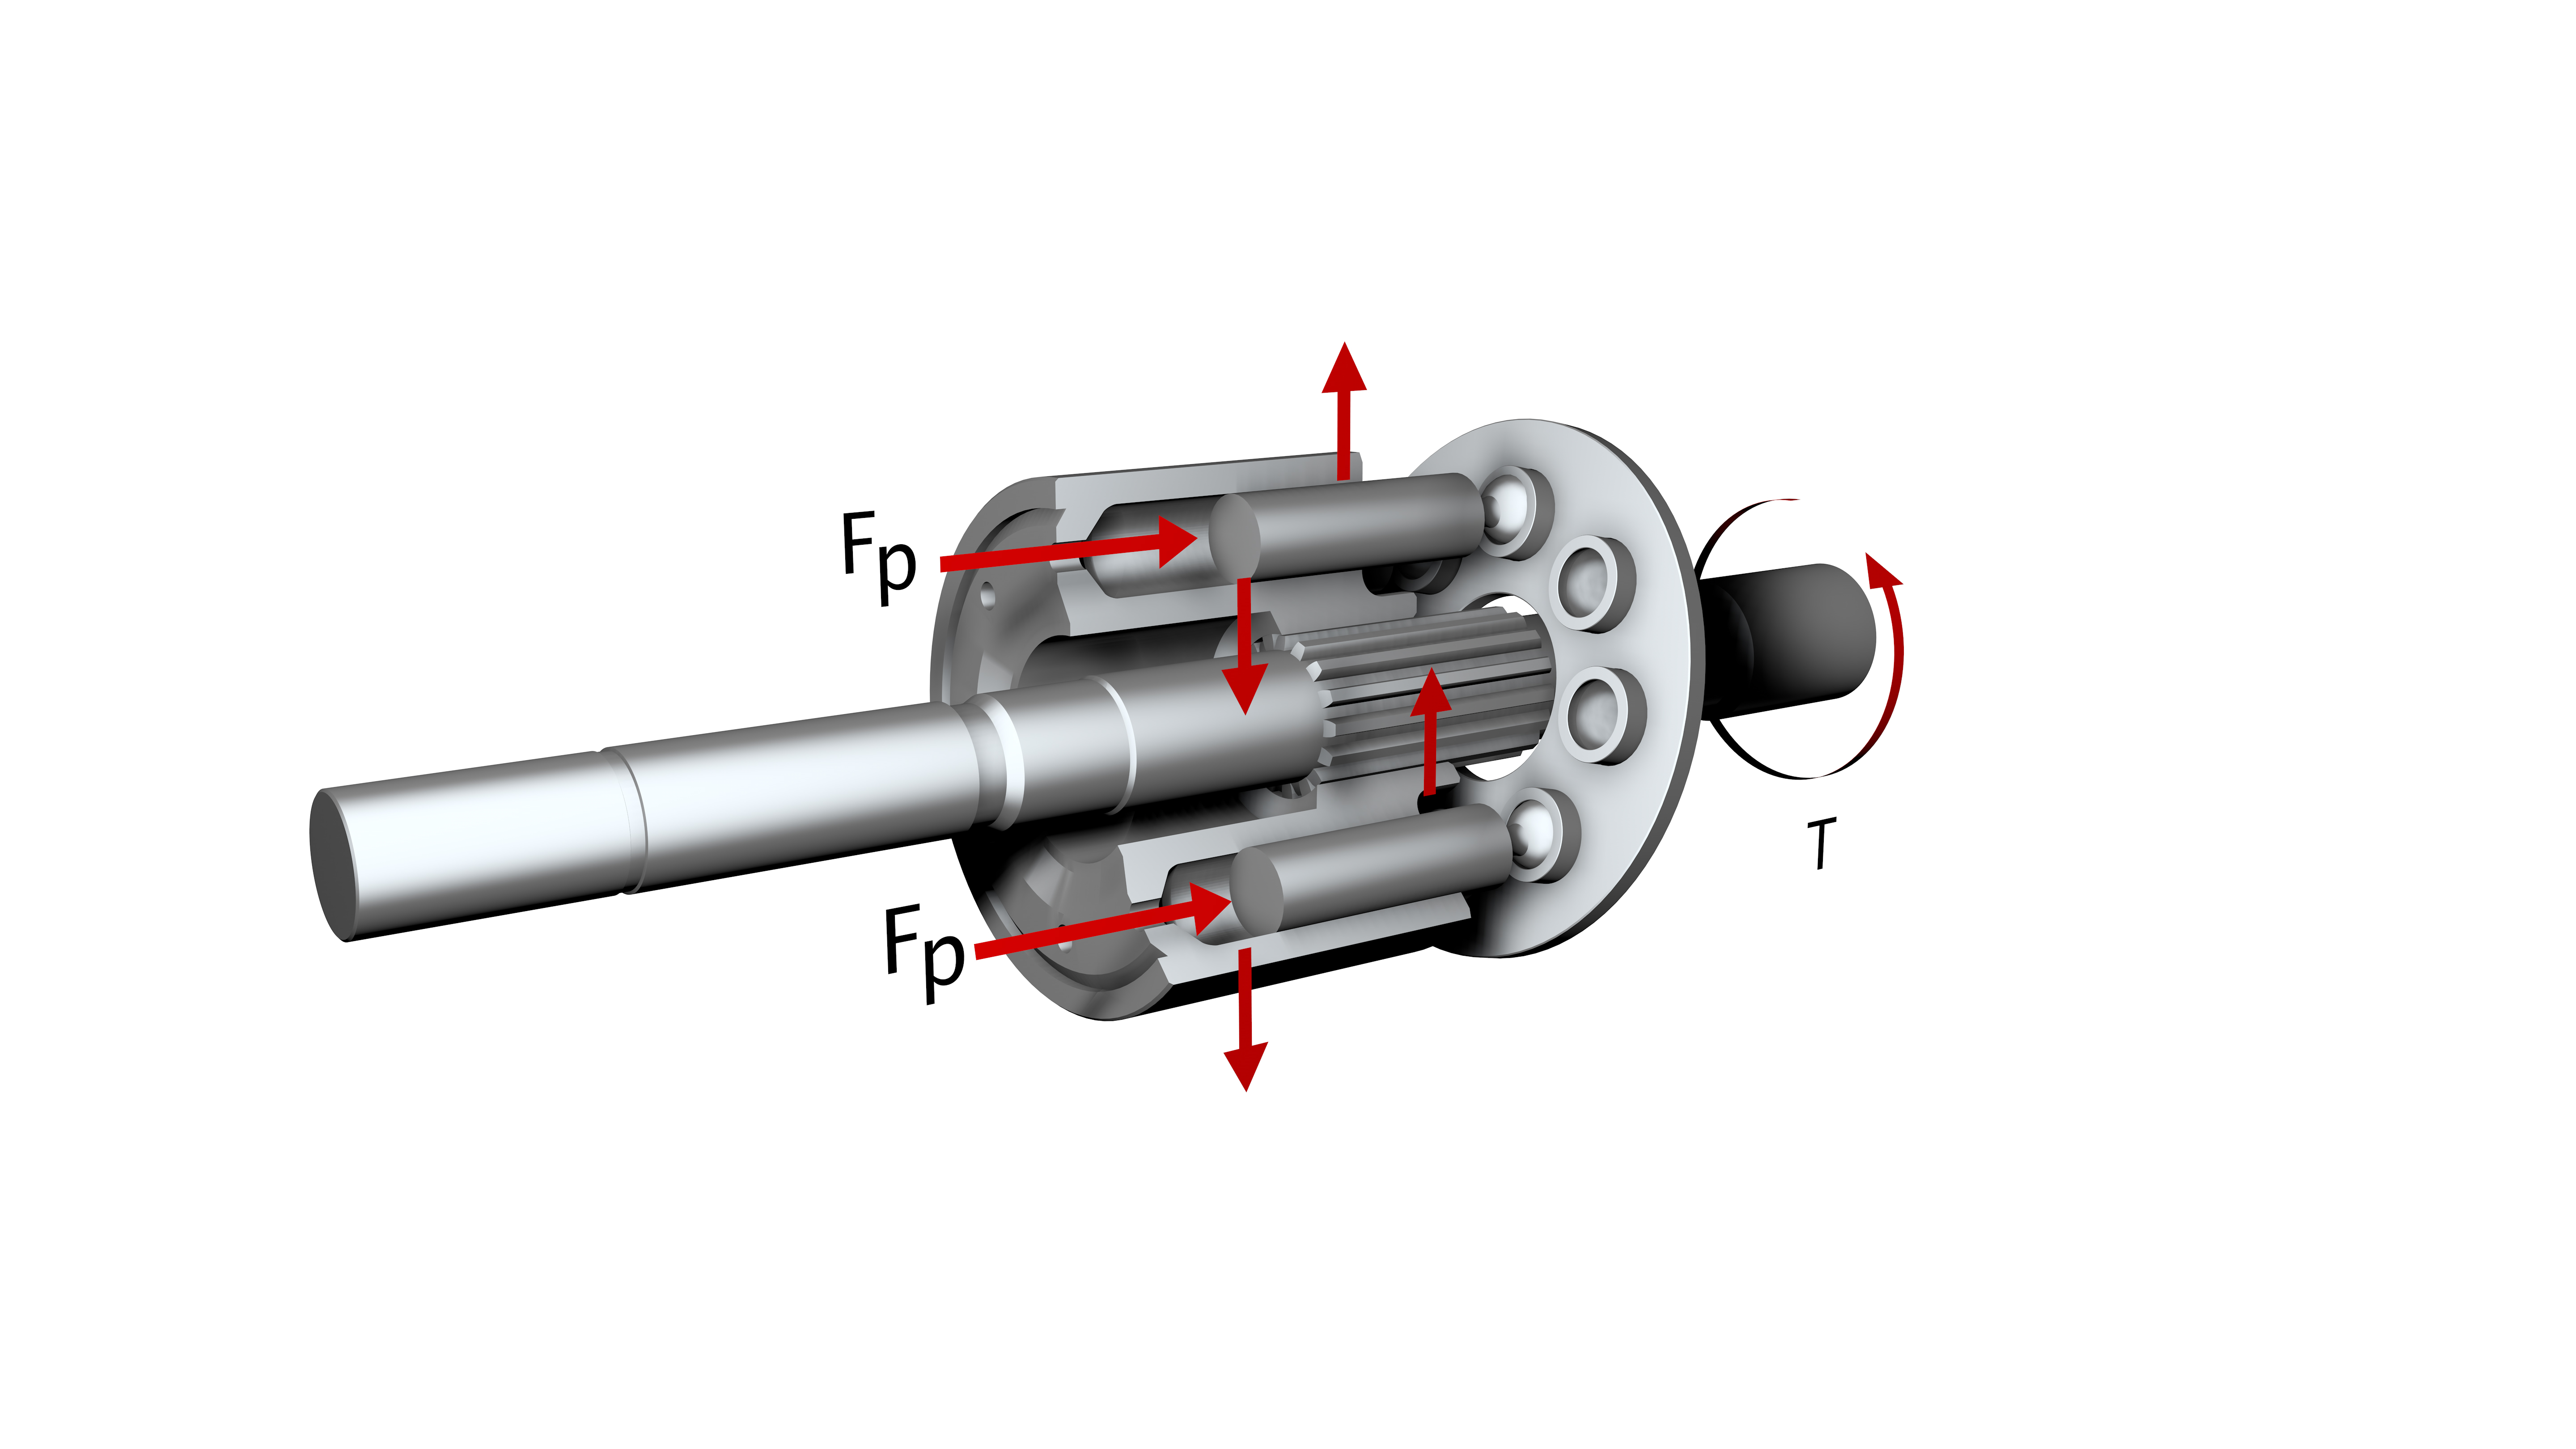 New demands on hydraulic pumps and motors reveal a need for